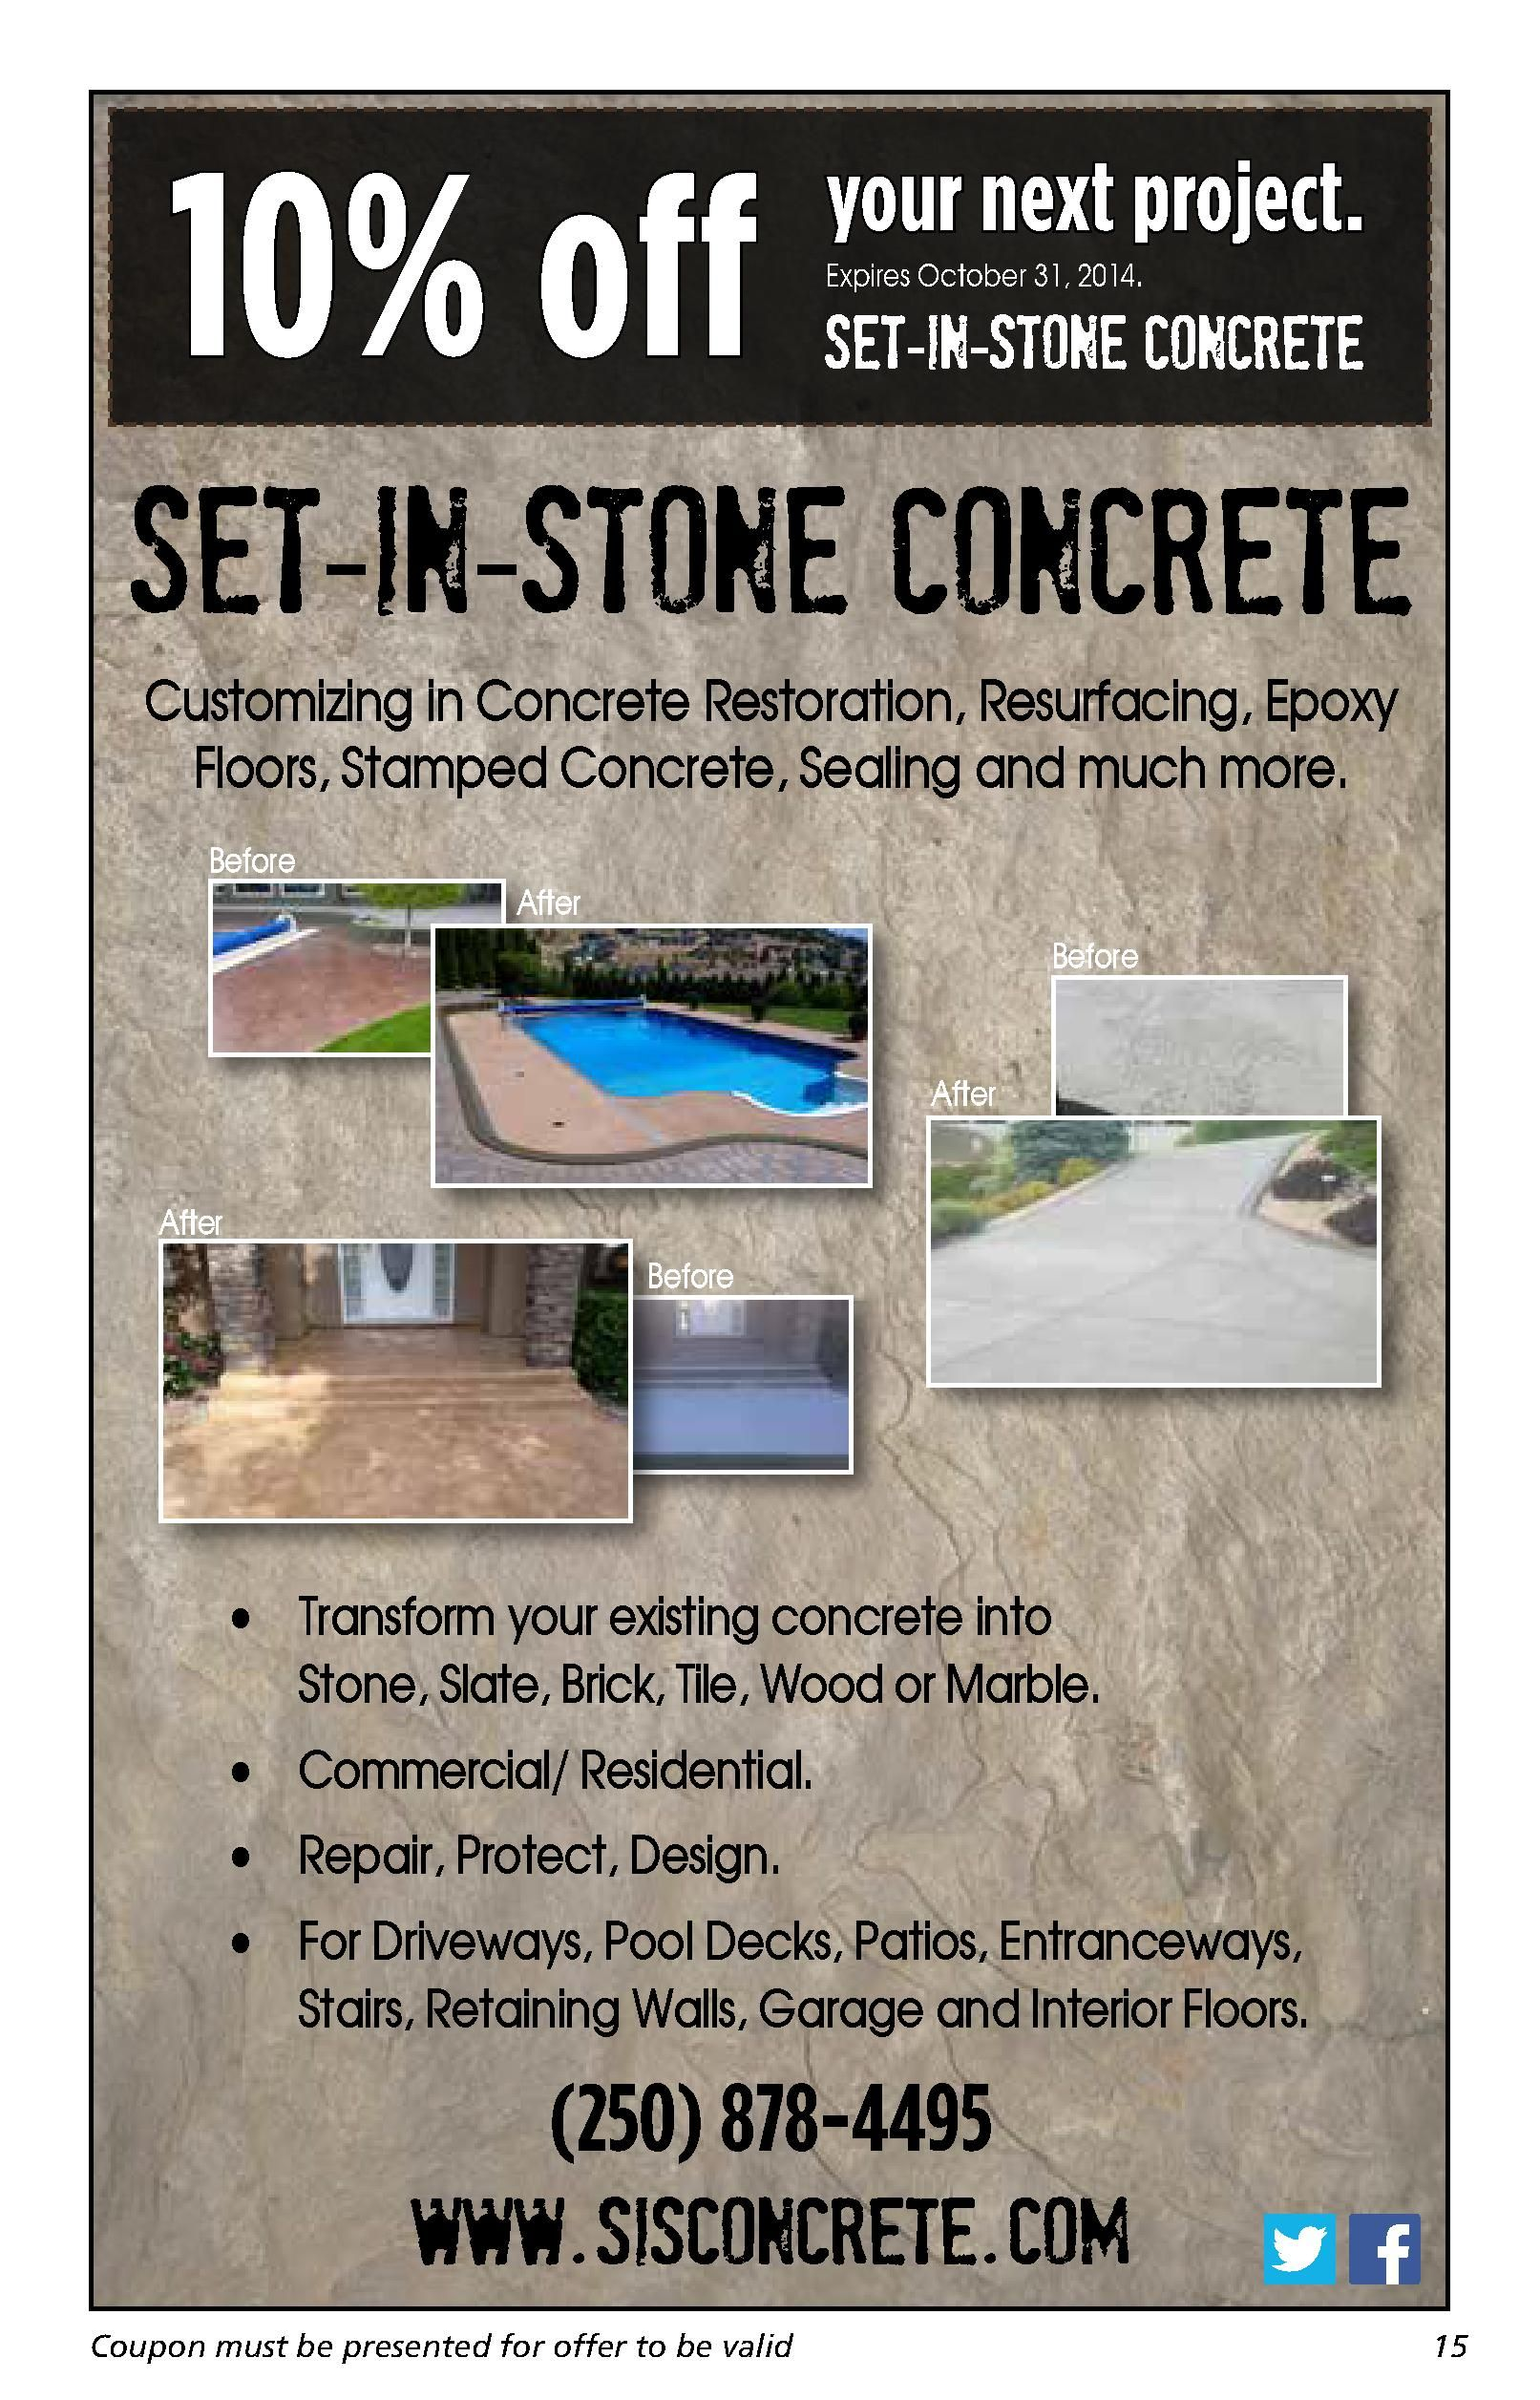 Set in Stone Concrete 10% off special, download!